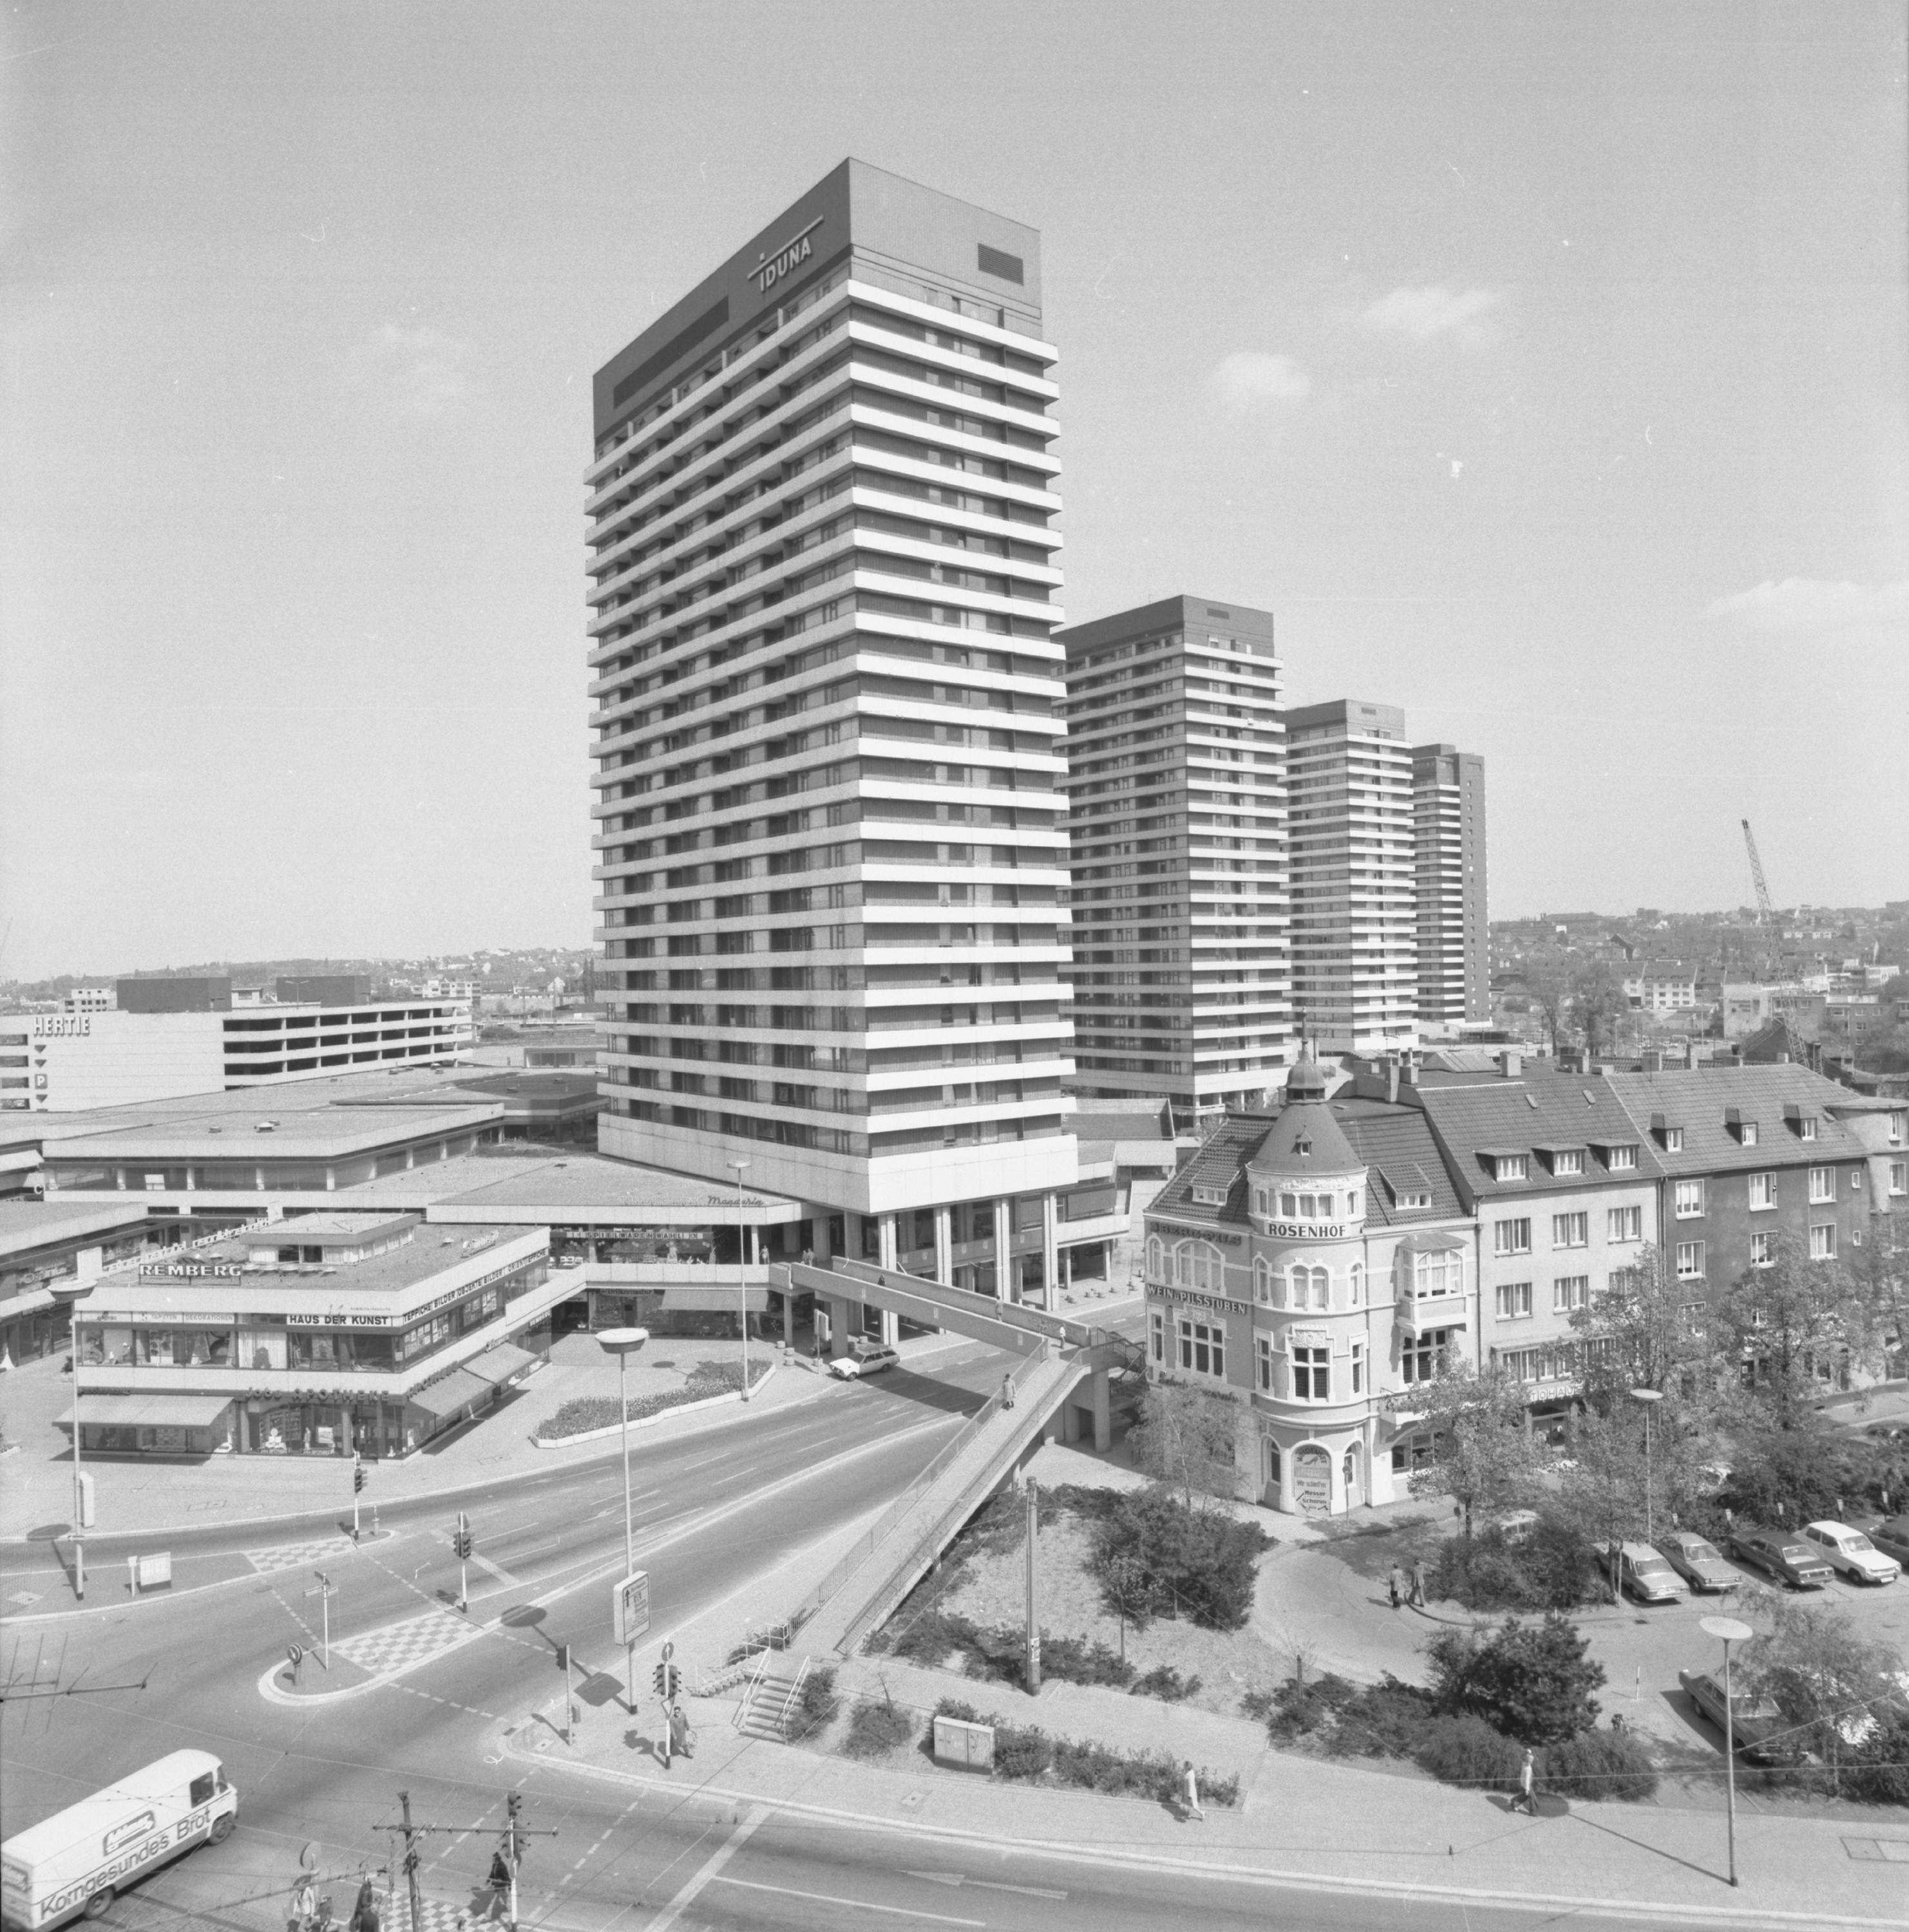 FORUM/City-Center, Mülheim an der Ruhr, 1976 | © Medienkompetenzzentrum, Mülheim an der Ruhr